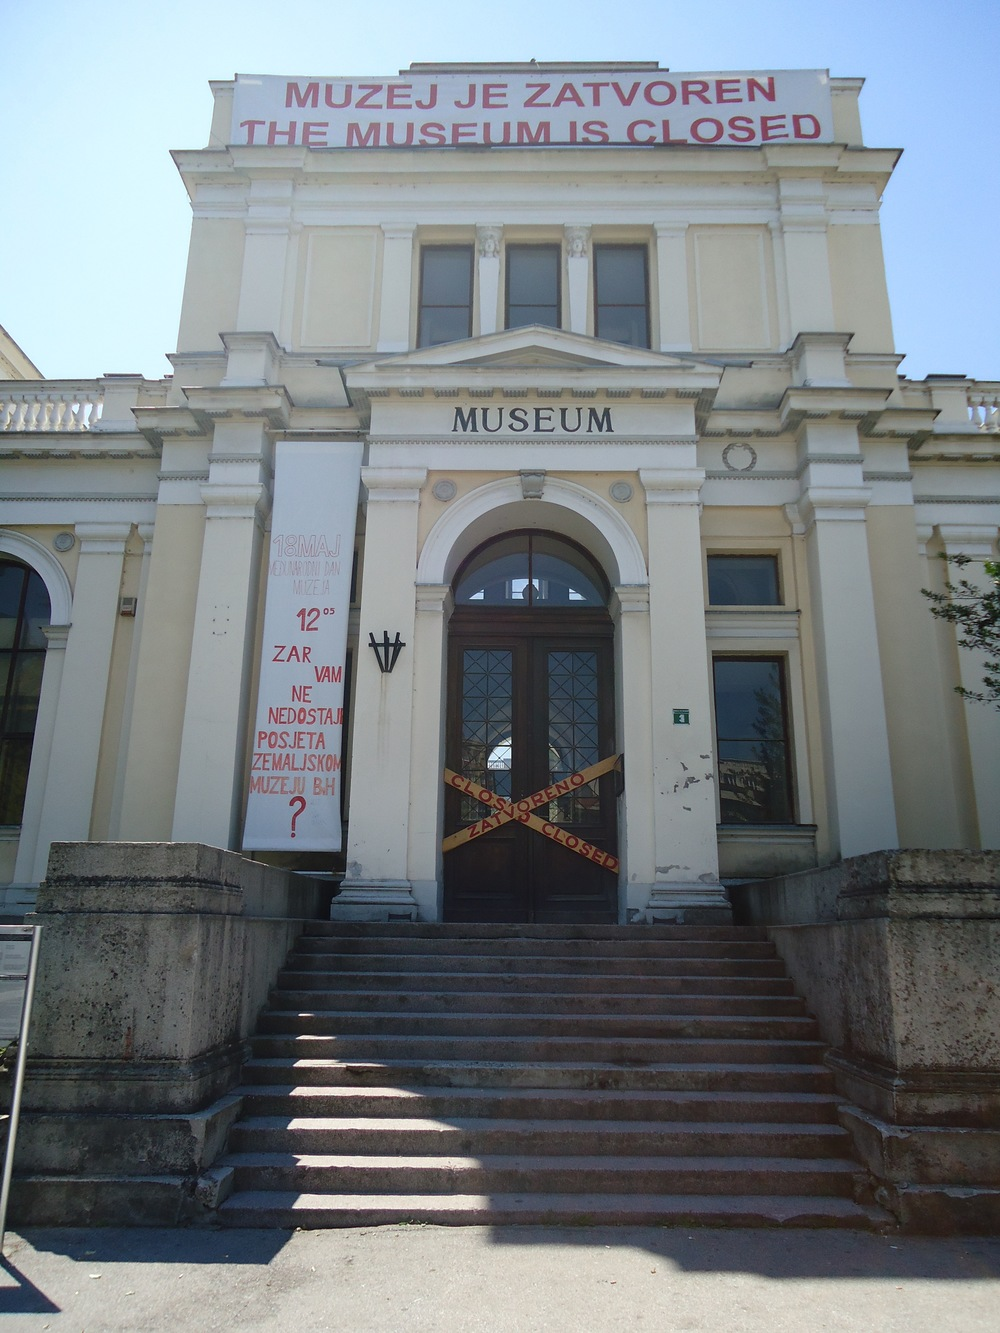 Sarajevo's National Museum: closed since 2012